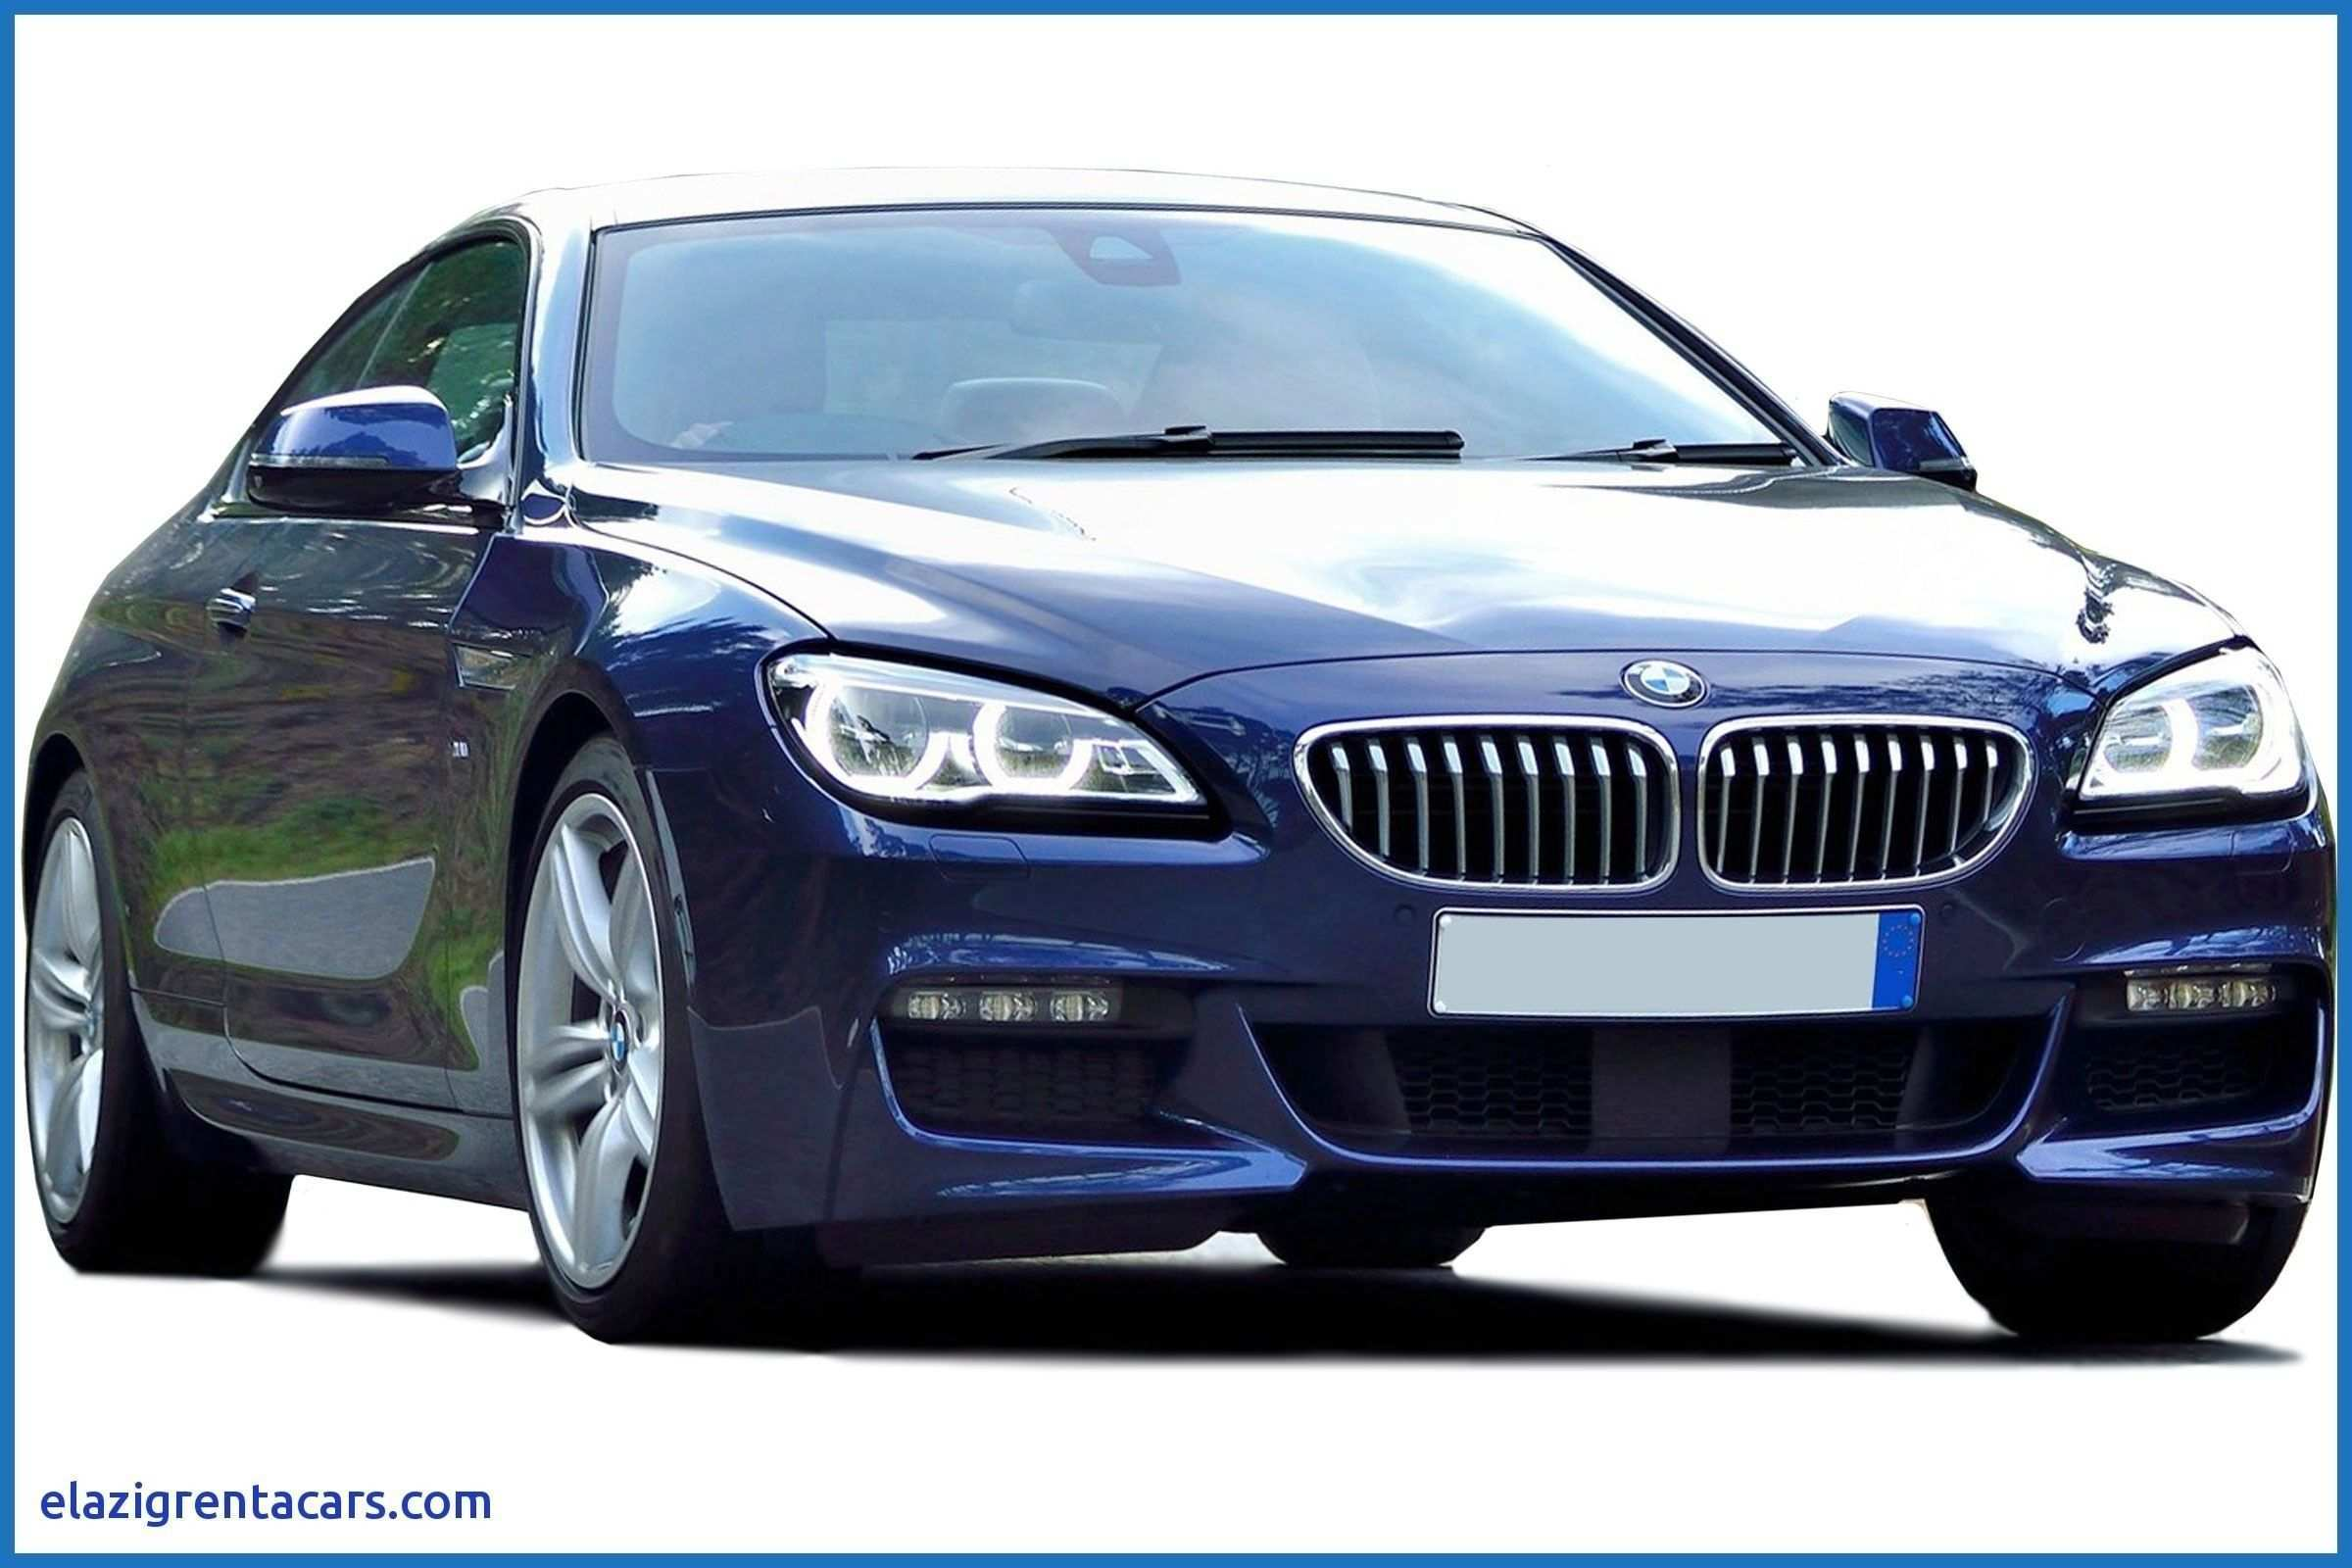 42 Best 2019 BMW 7 Series Perfection New Price And Review